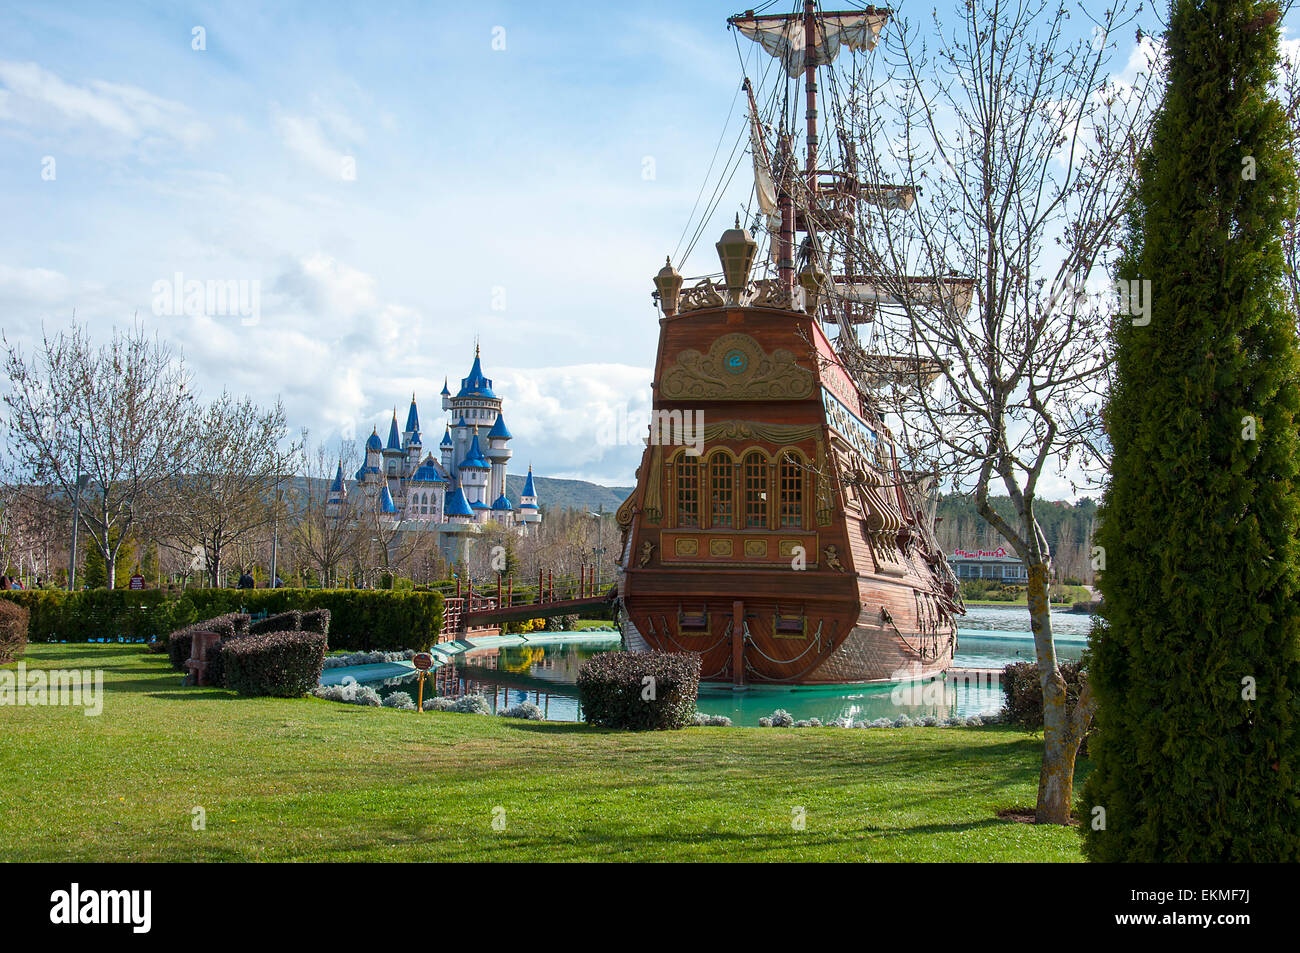 Etonnant Pirate Ship In Garden Of Tale   Stock Image